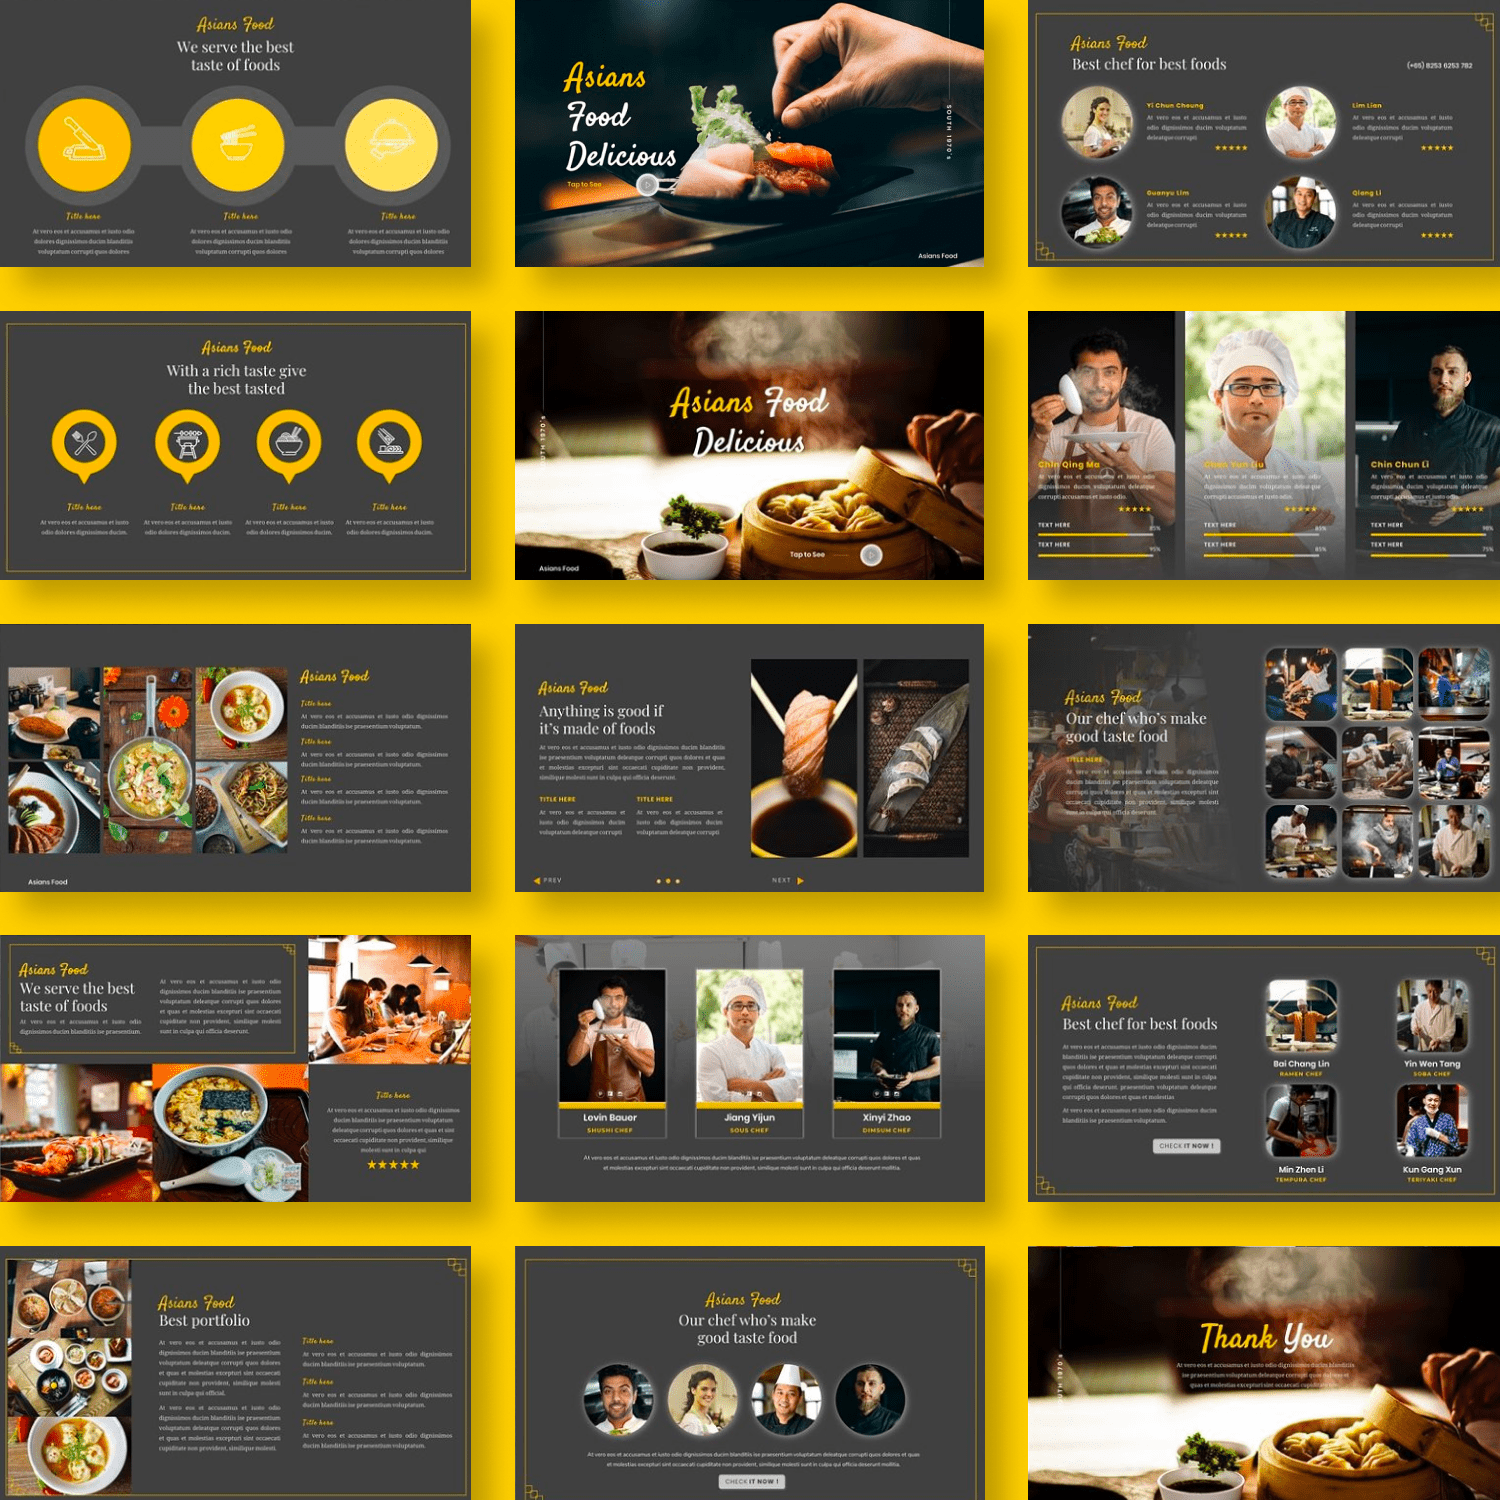 Asians Food - Food PowerPoint by MasterBundles Collage Image.